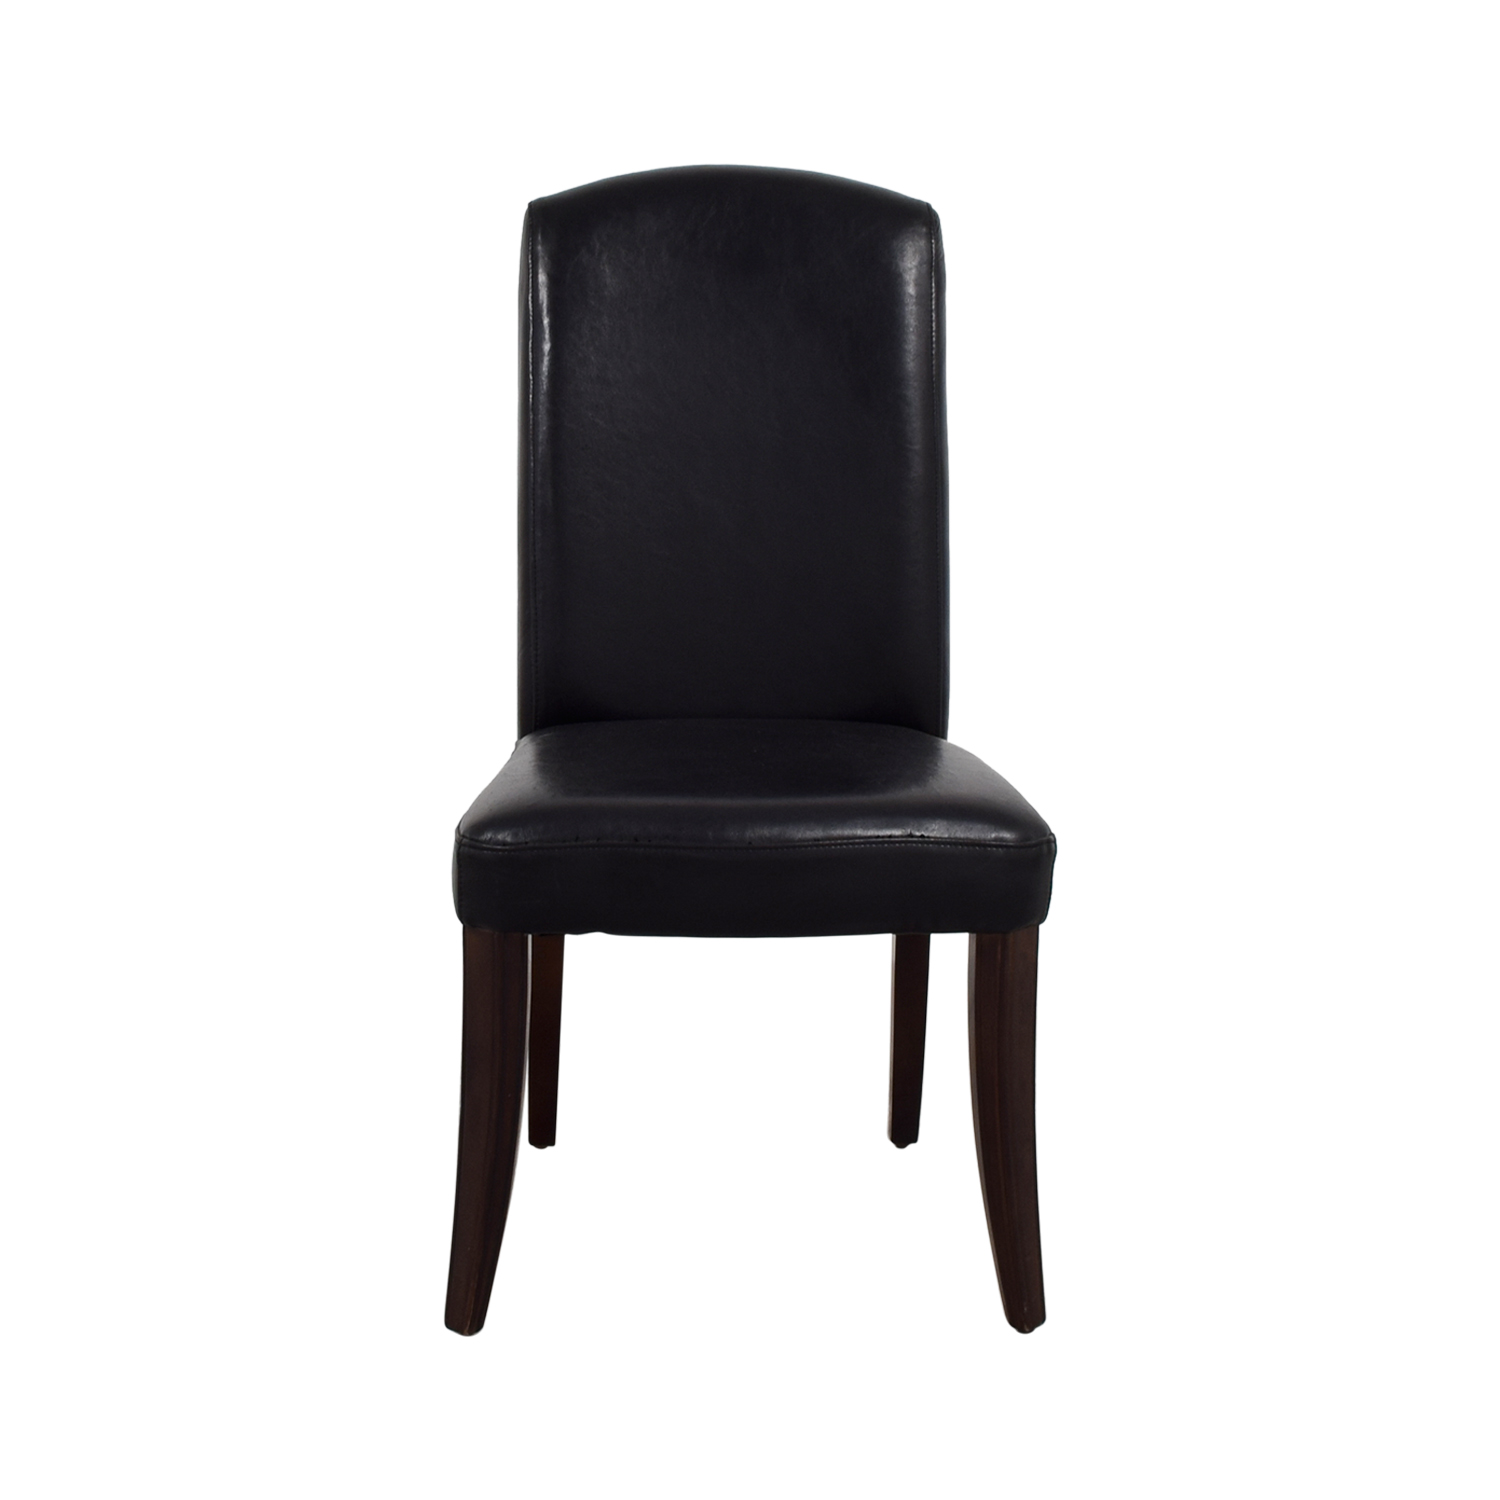 shop Black Leatherette Chair with Padded Seat Chairs